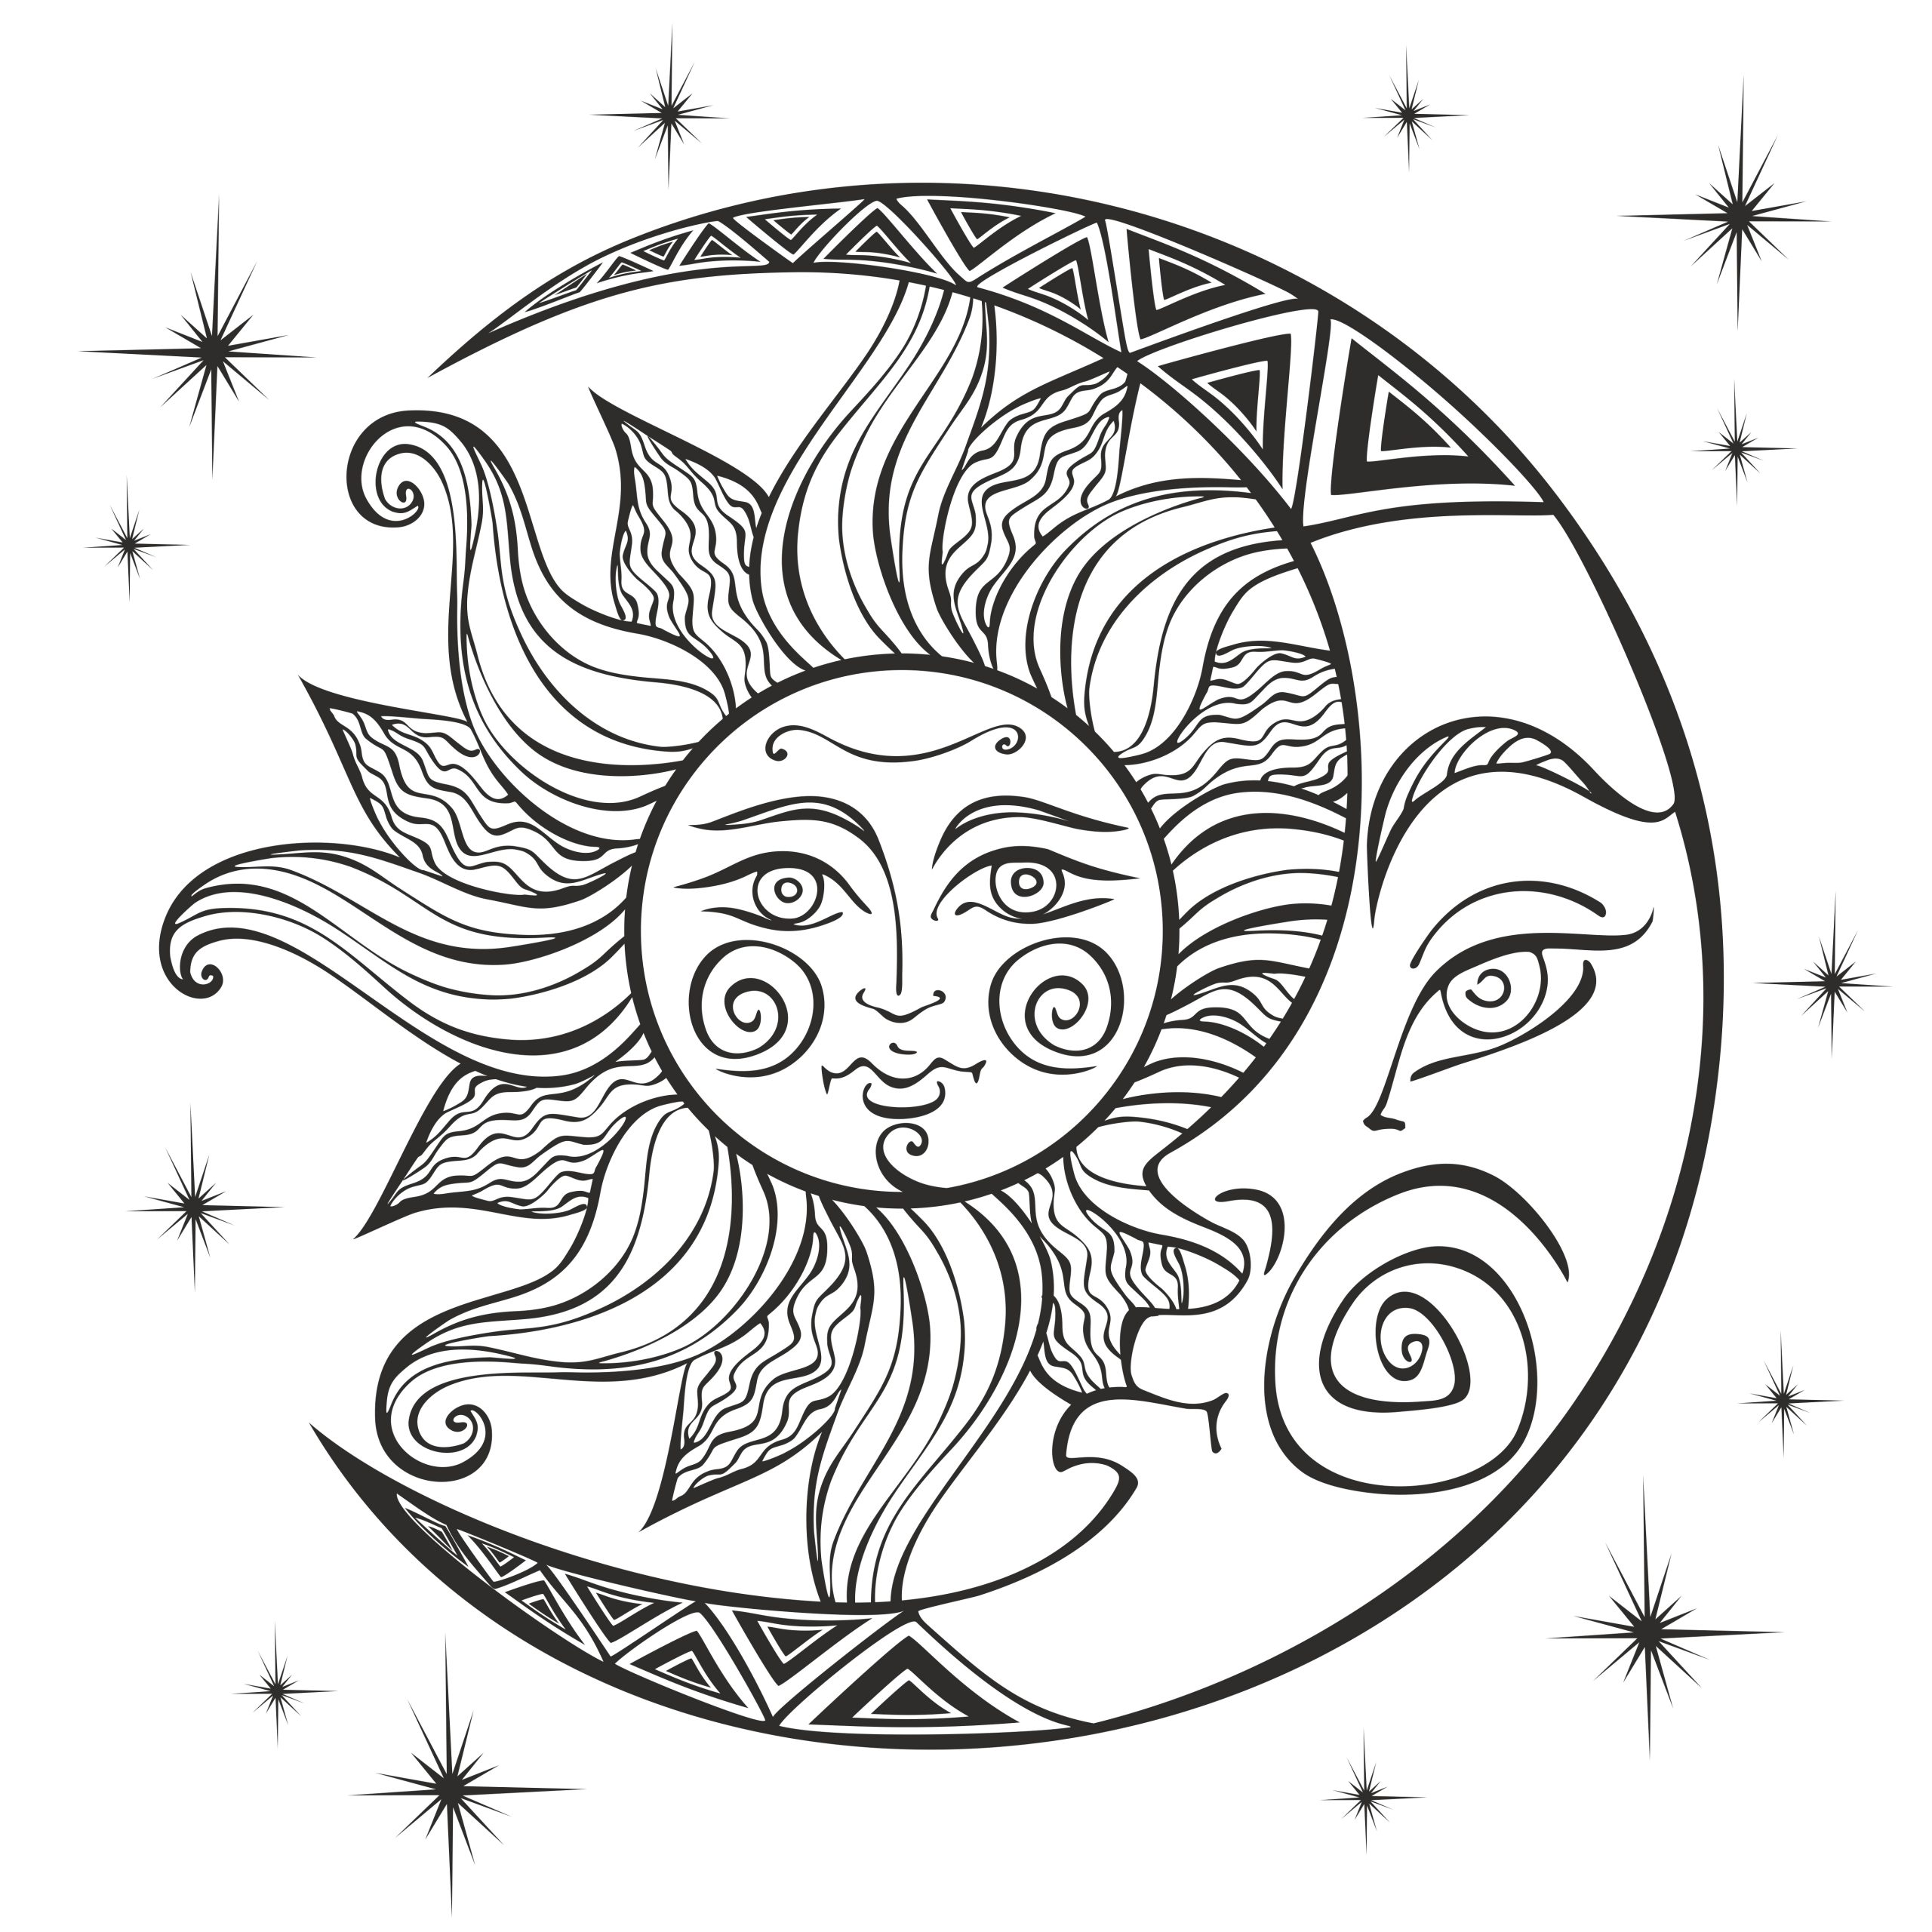 the moon and the sun ancient astrological symbol engraving boho style ethnic the symbol of the zodiac mystical coloring vector